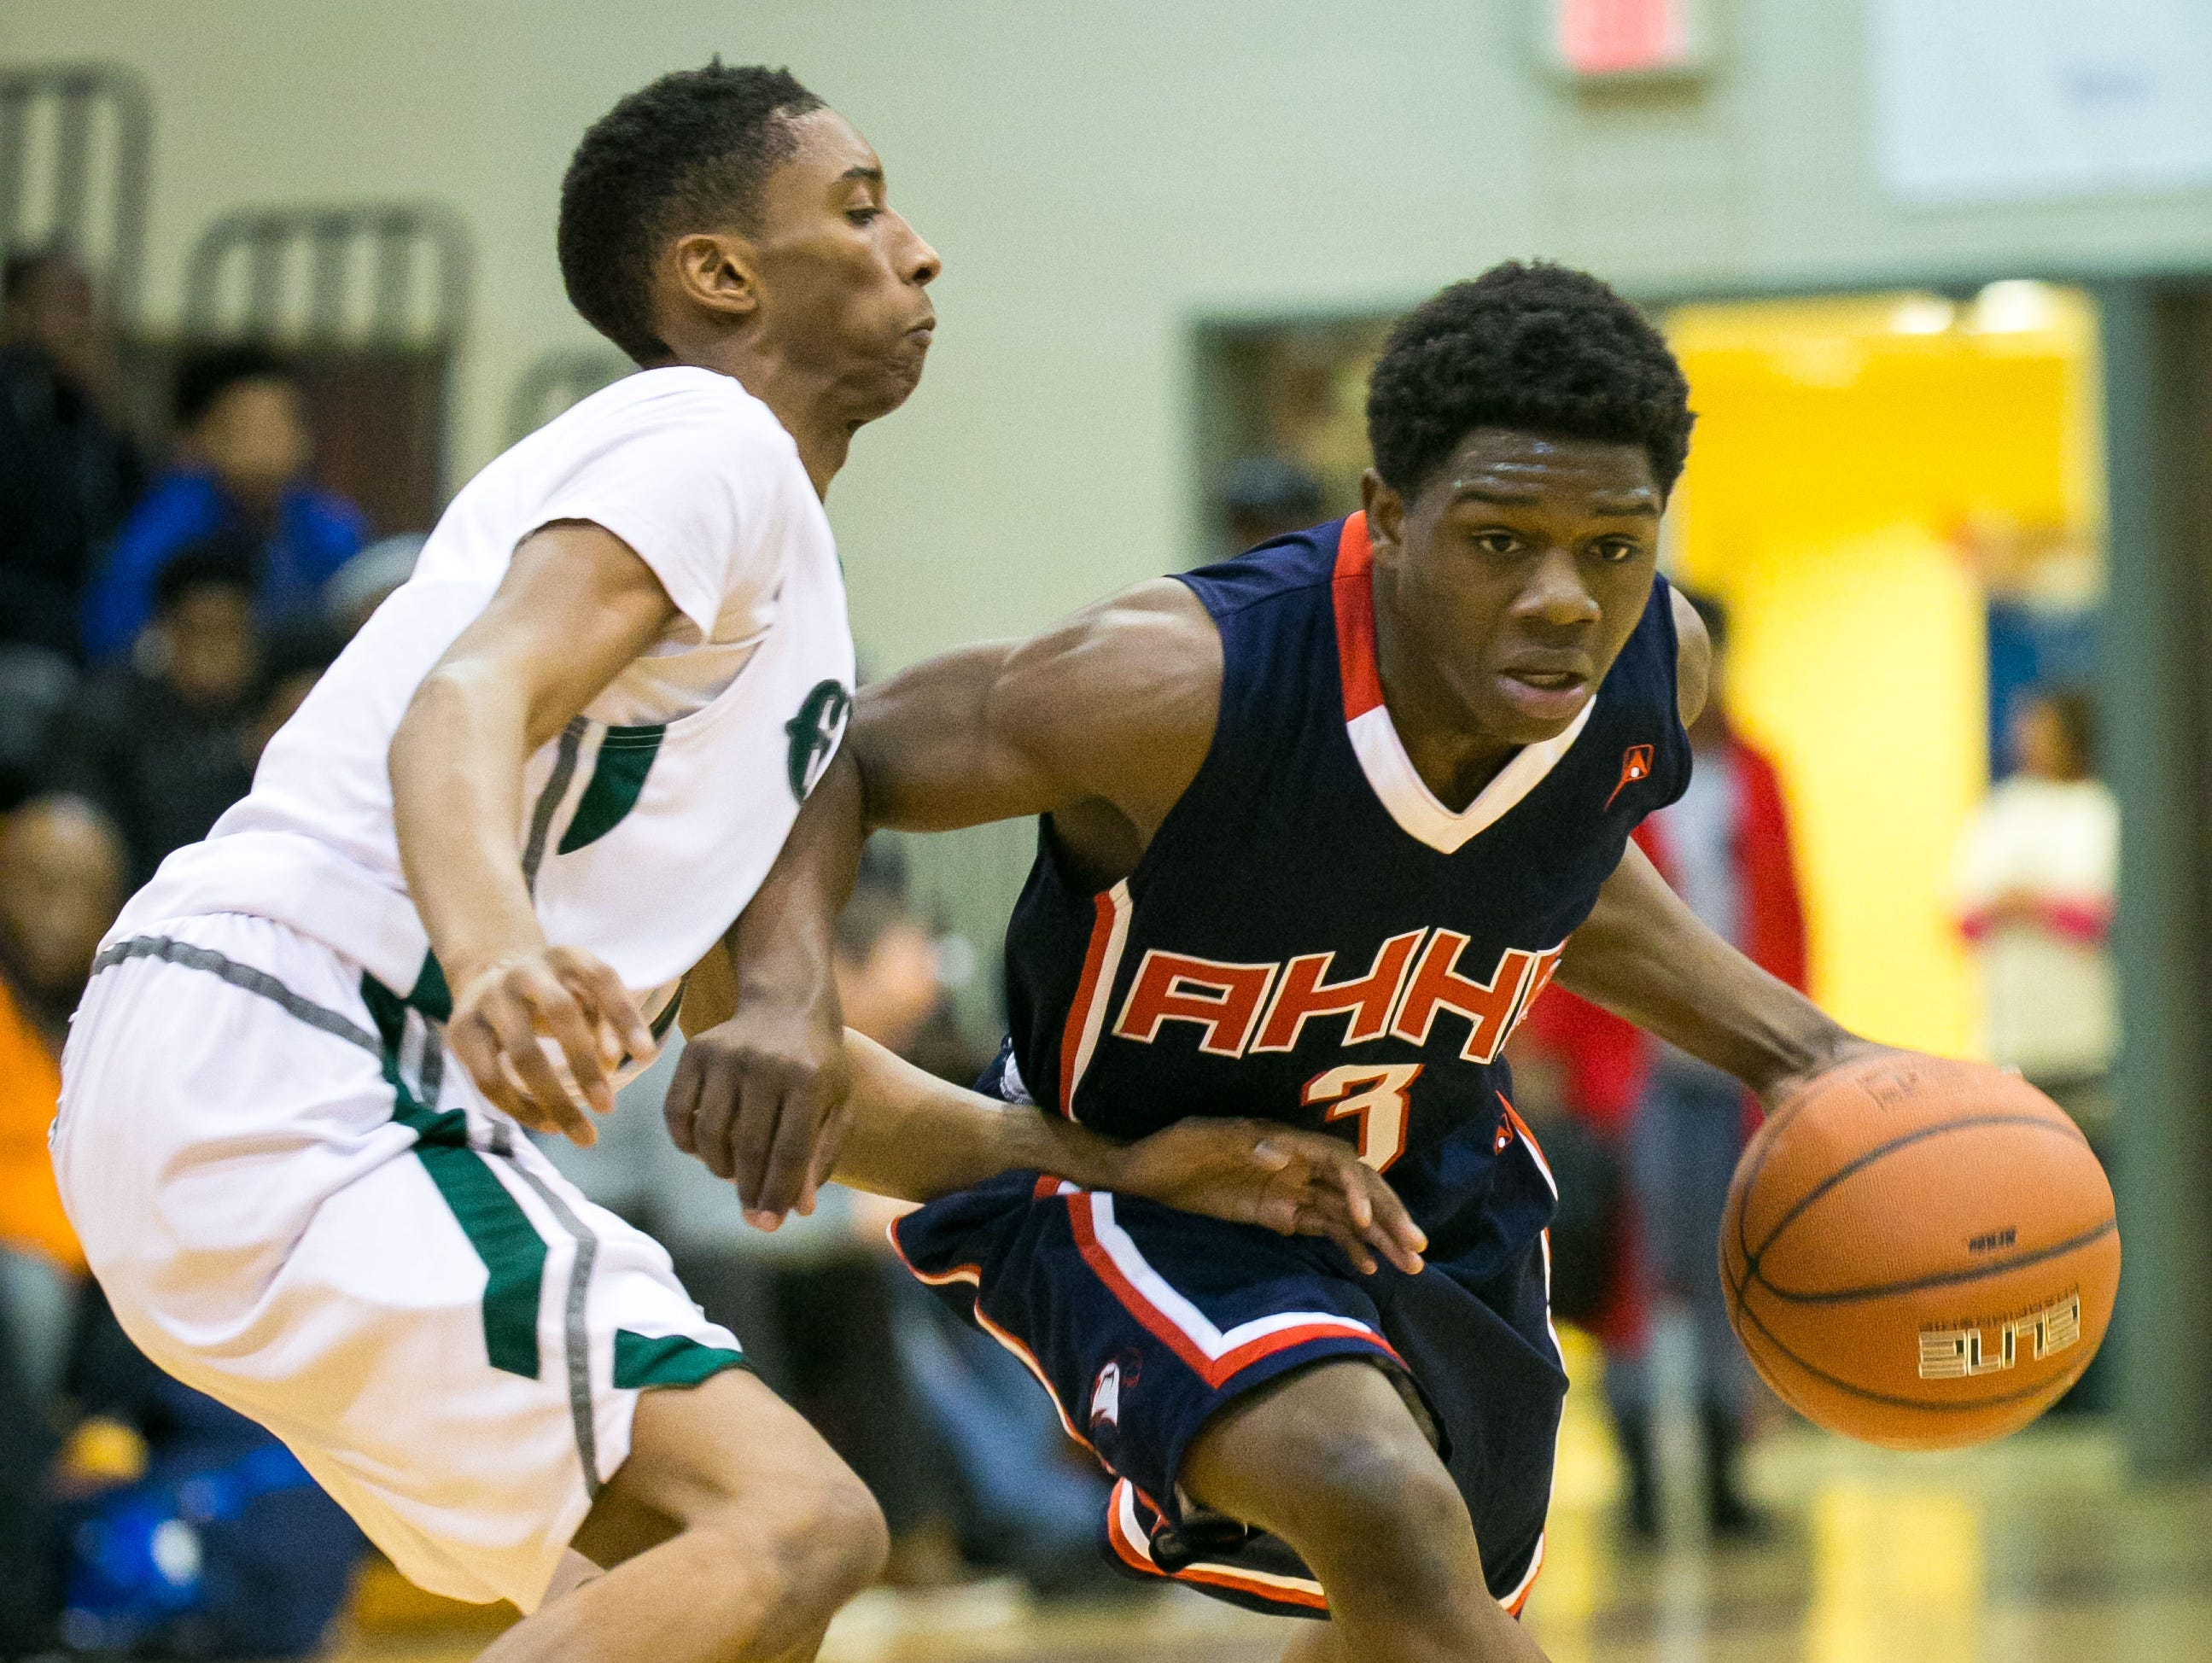 Papie Roberts of American History dribbles around Keon Taylor of Mount Pleasant.